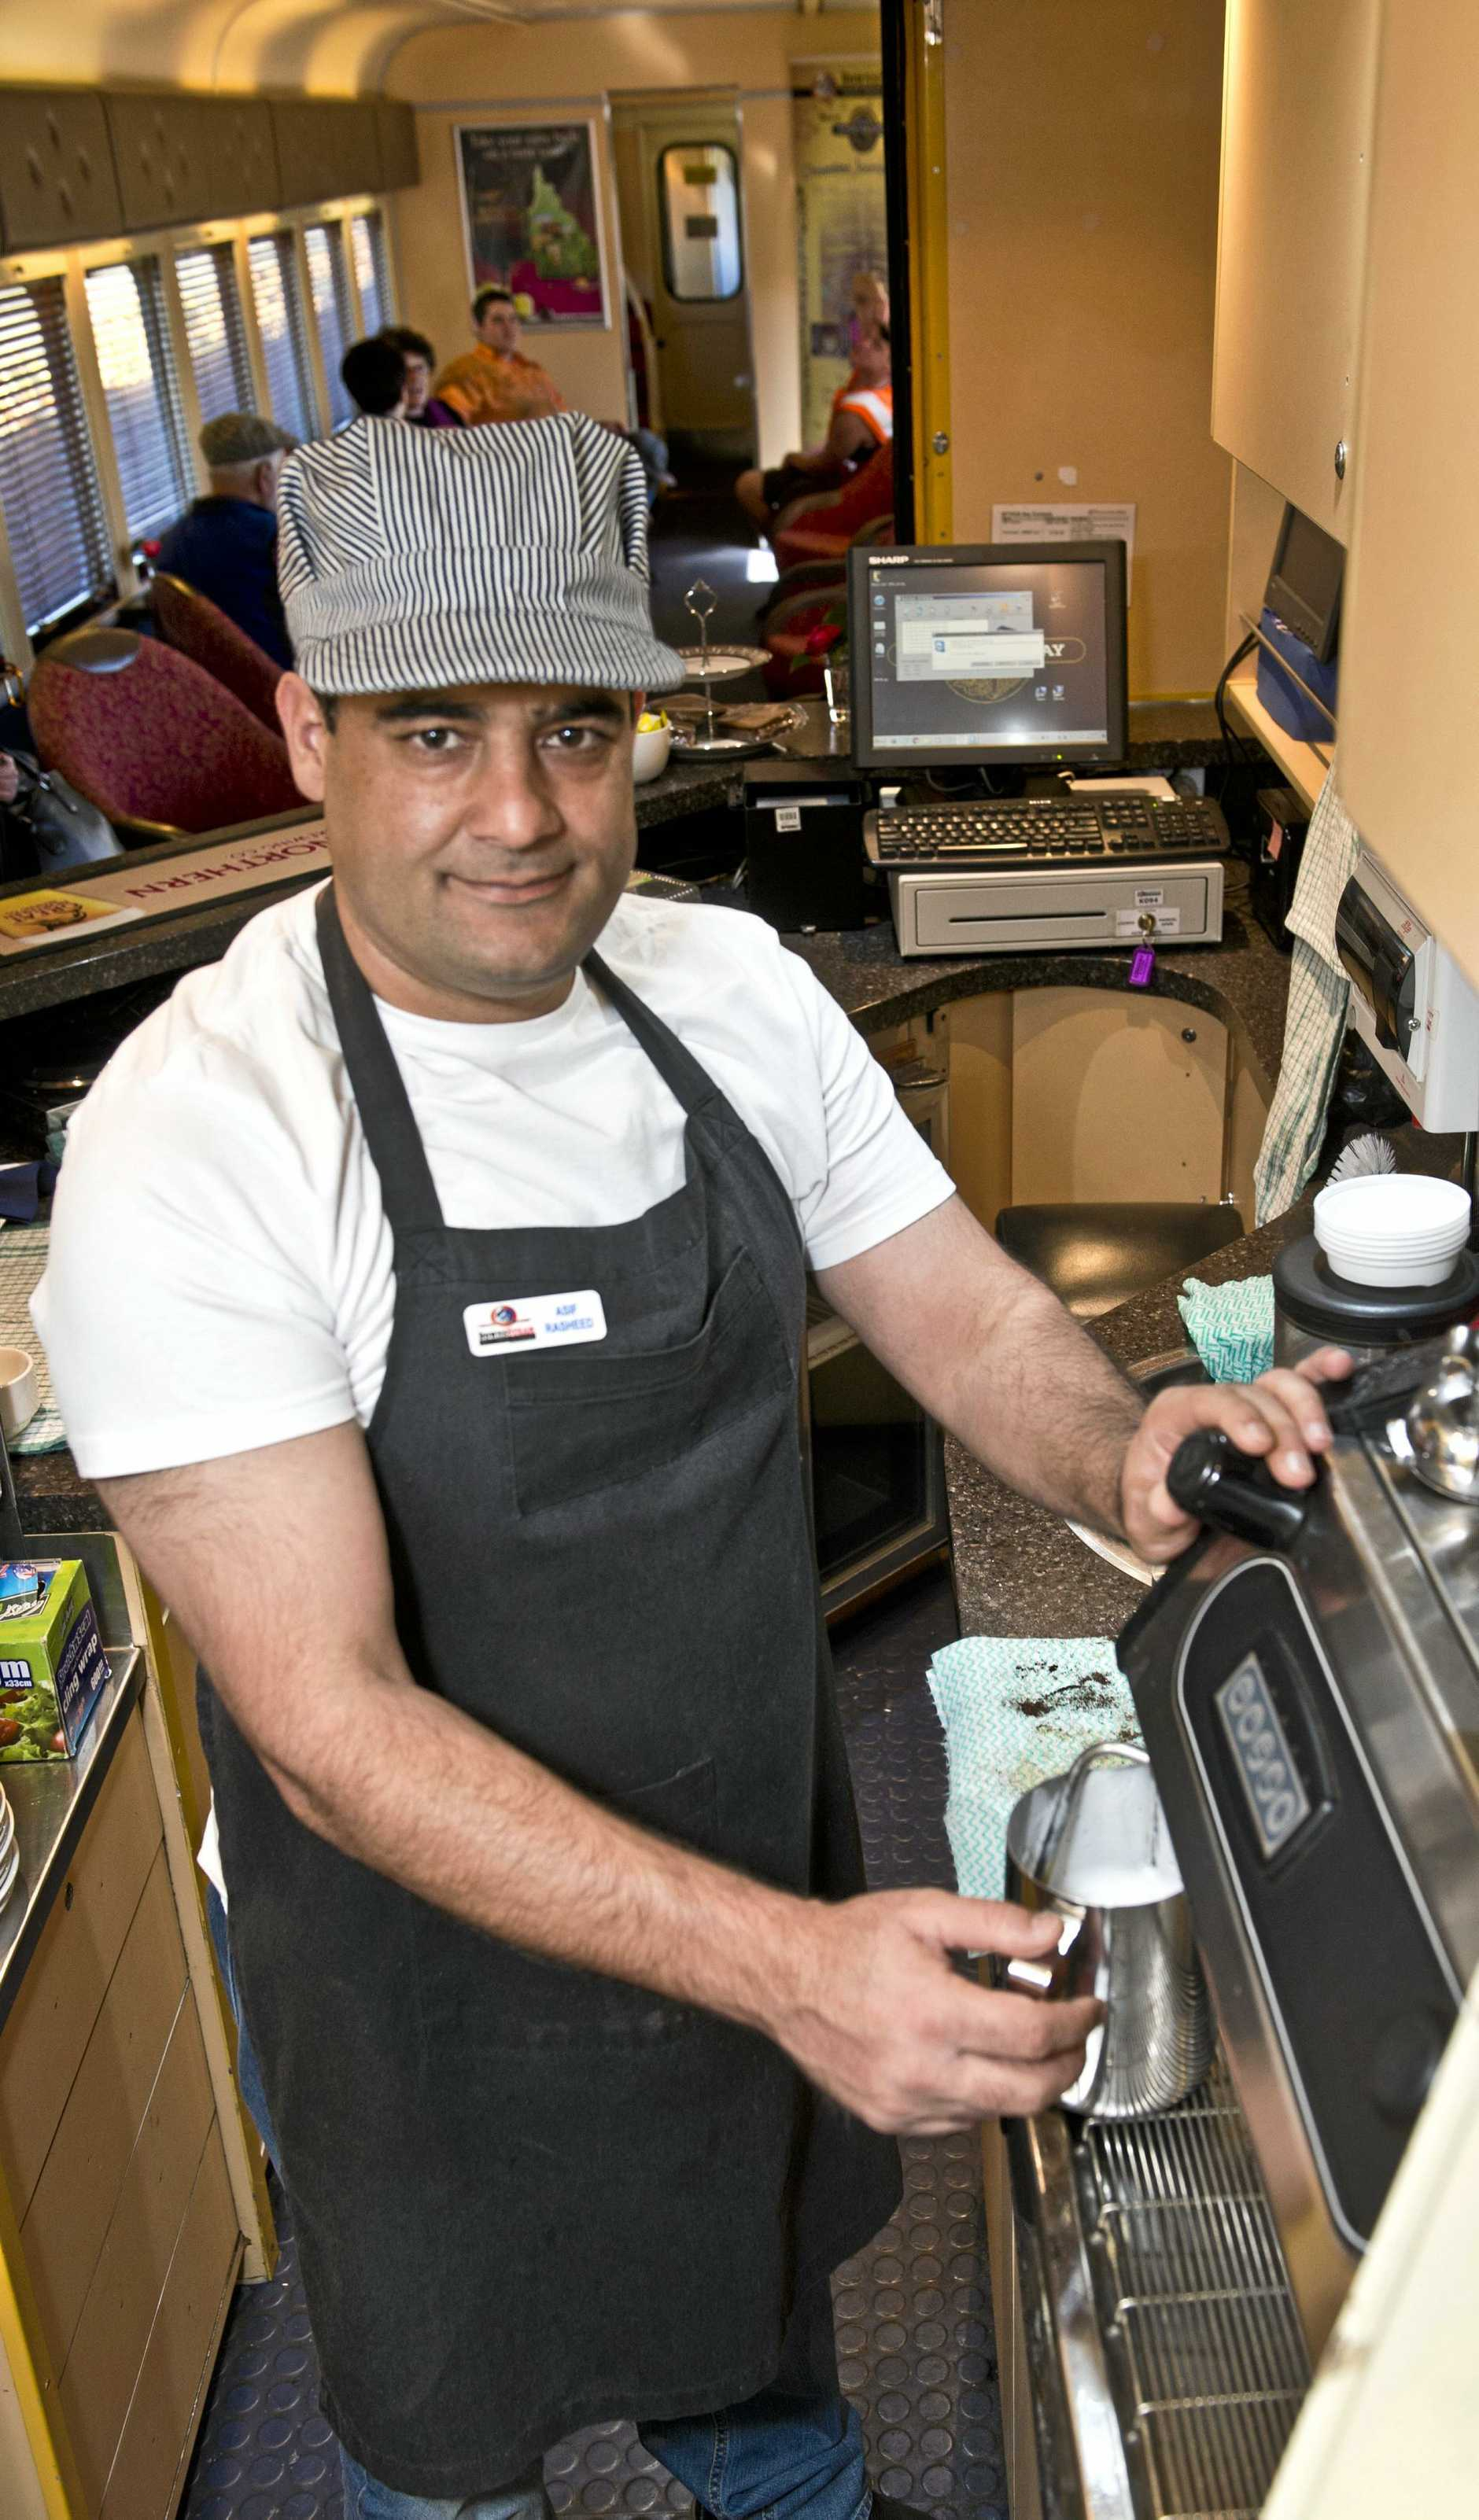 Asif Rasheed, barista at the Downs Steam open day. Saturday, 5th Aug, 2017.